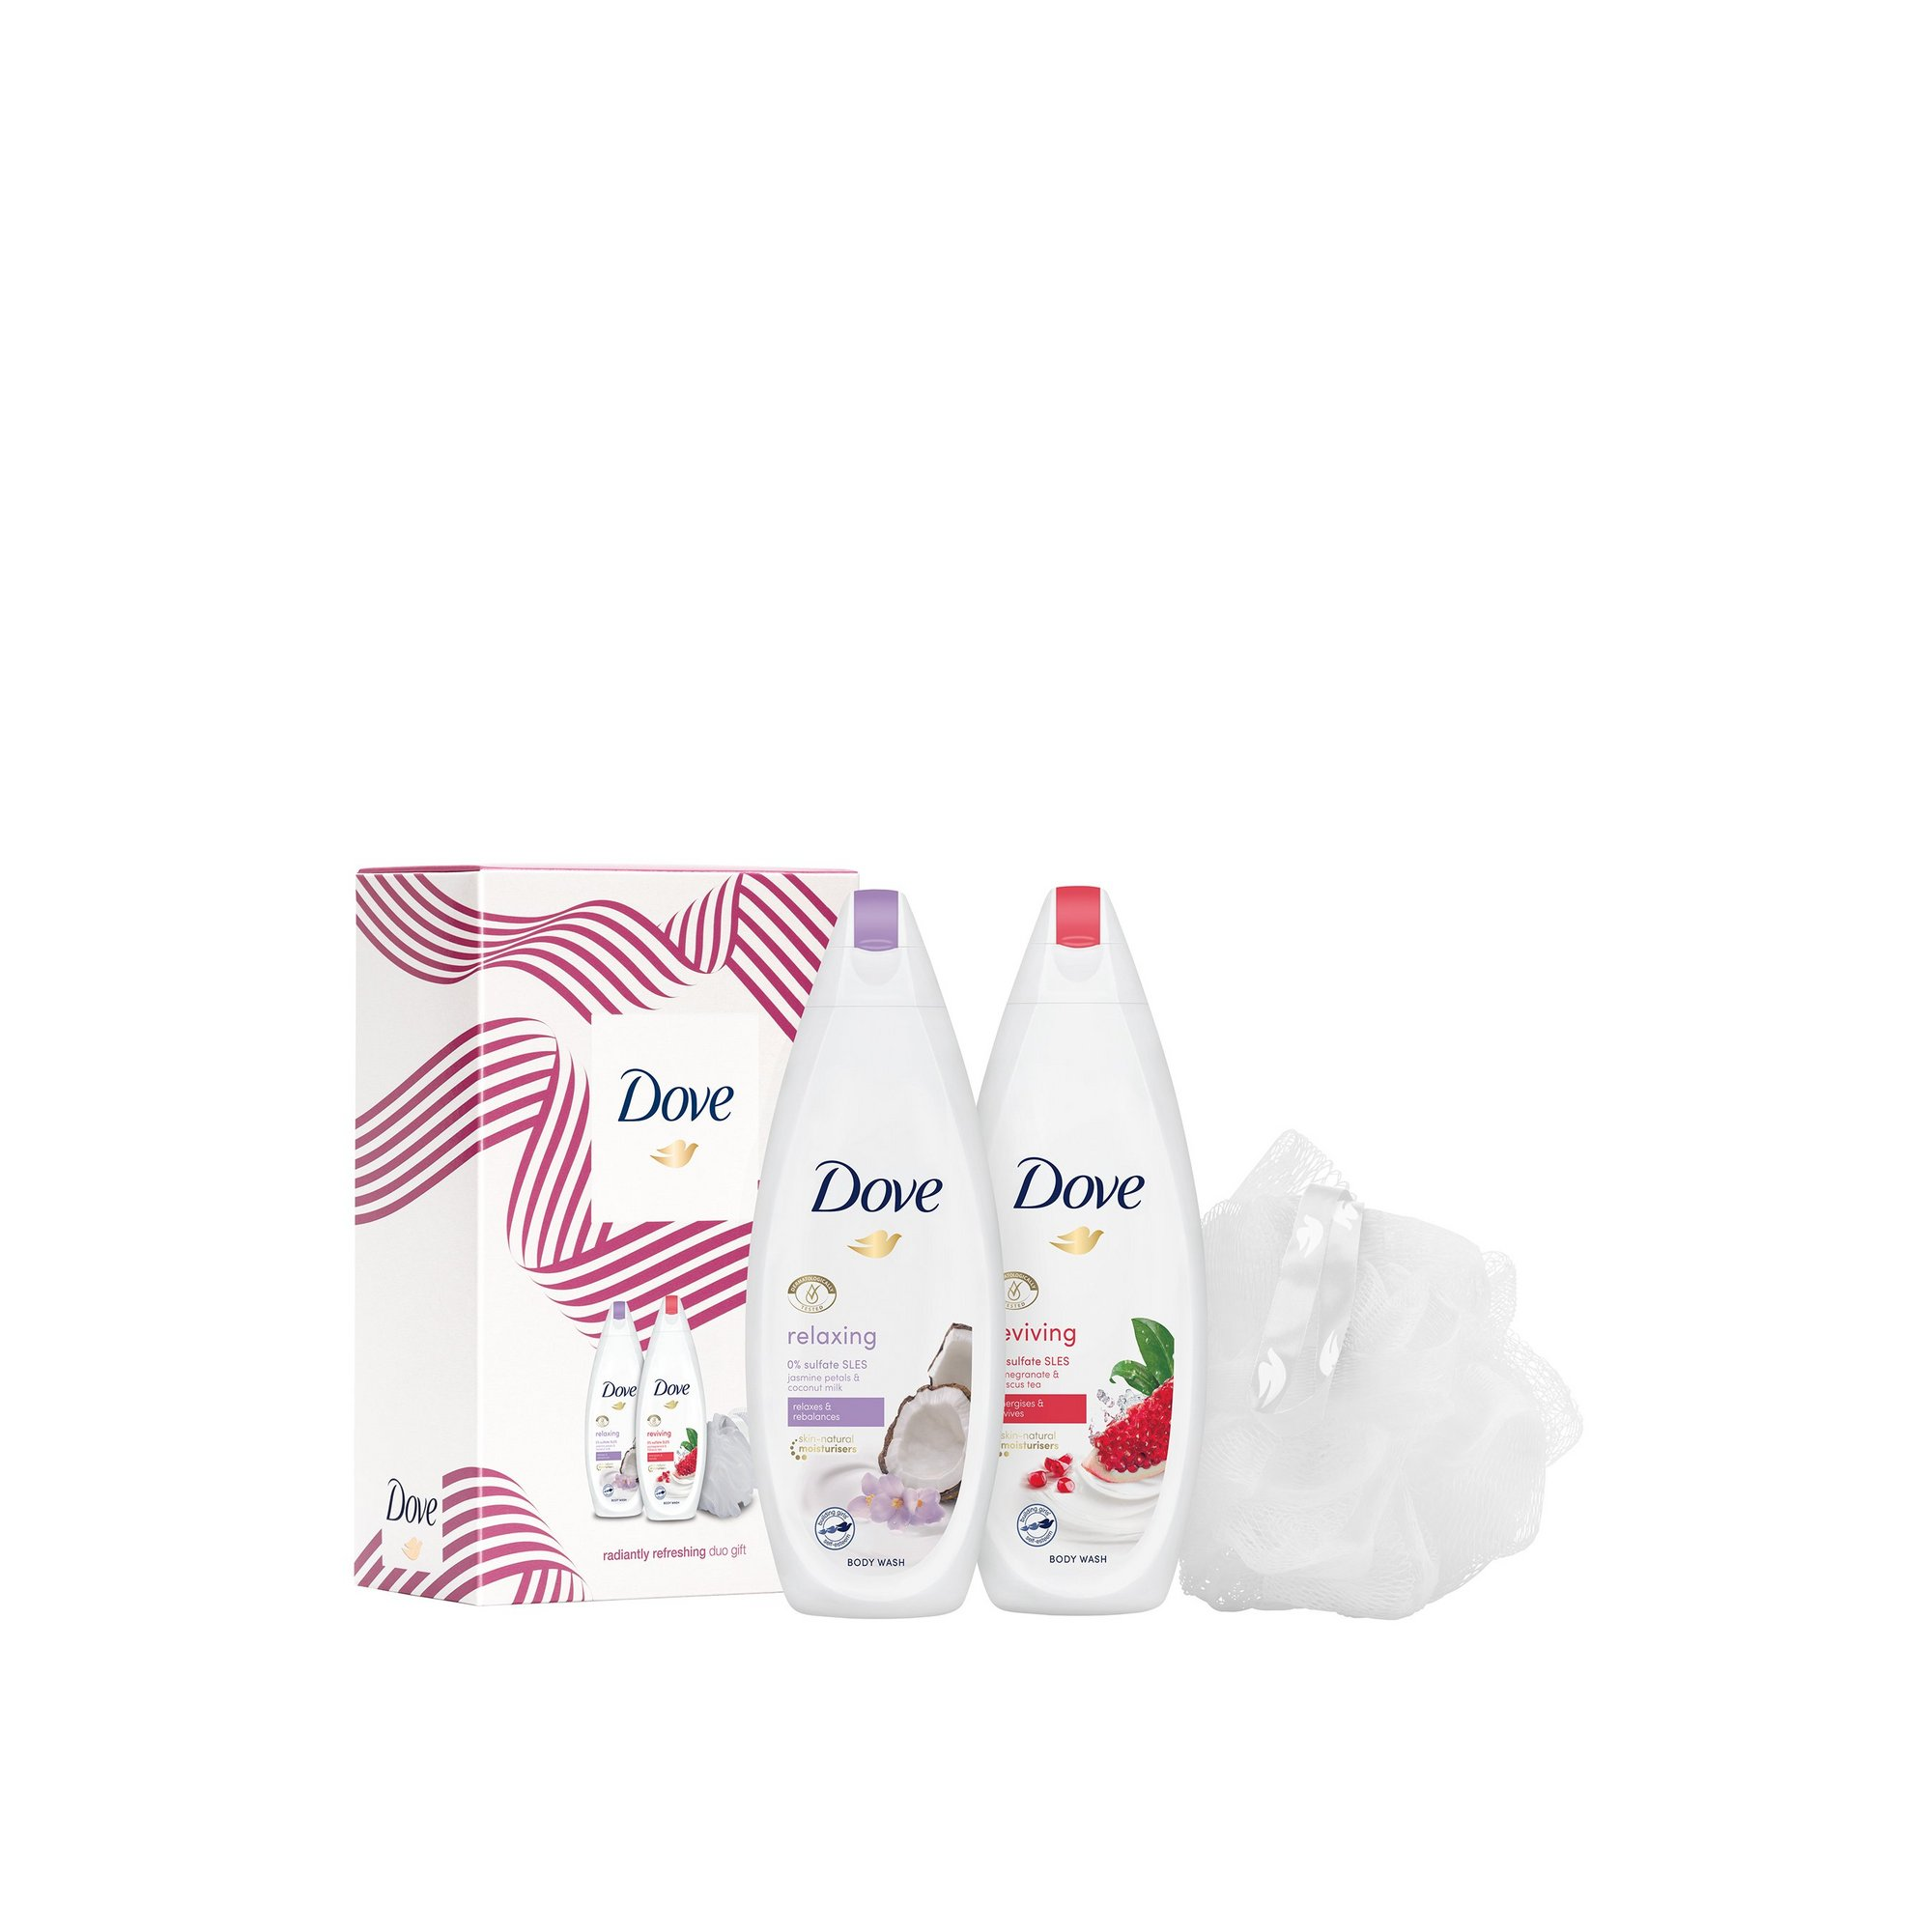 Image of Dove Radiantly Refreshing Duo Gift Set